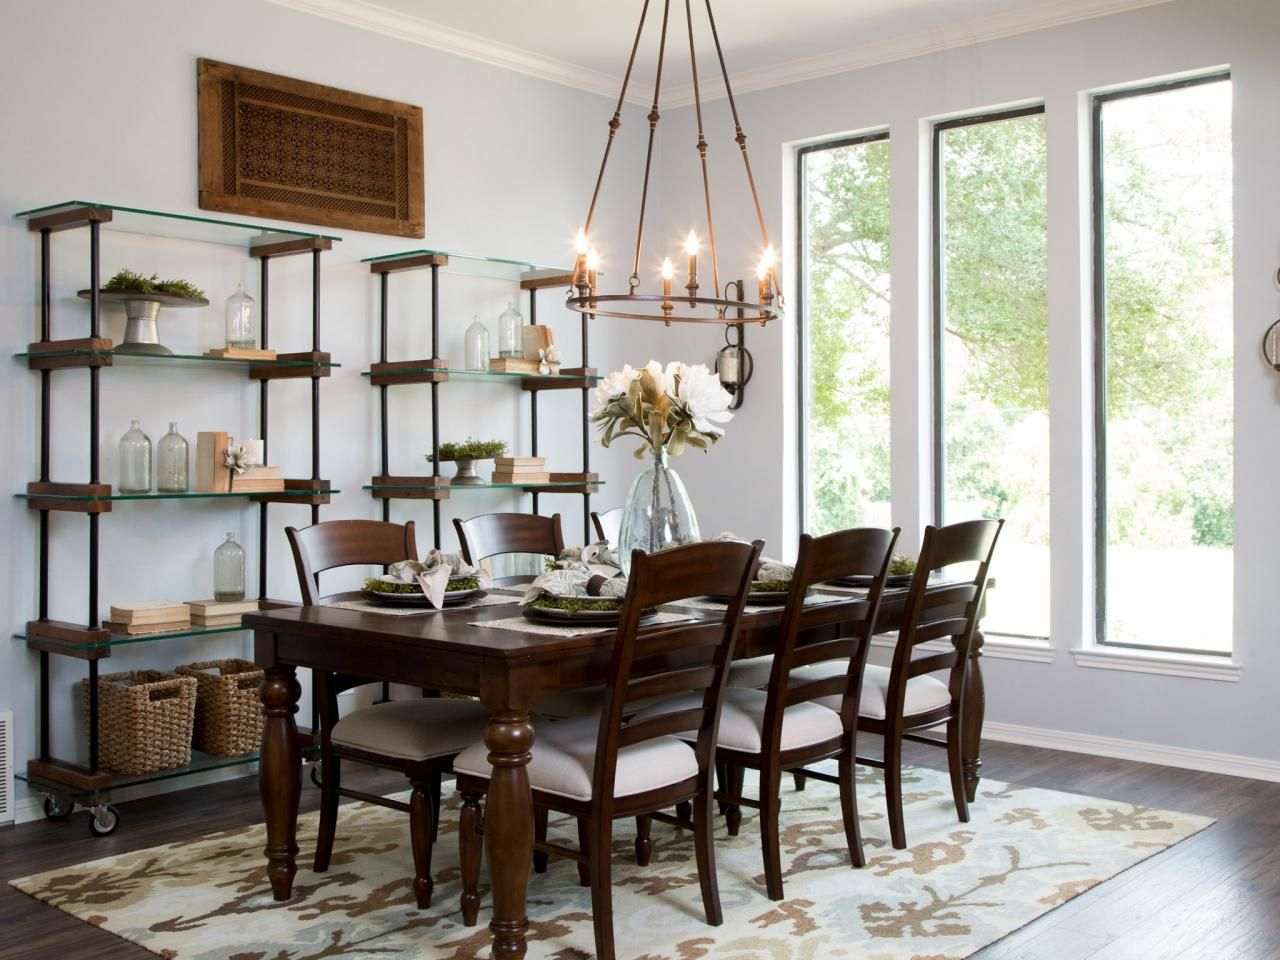 Fixer upper a rush to renovate an 39 80s ranch home for Joanna gaines dining room ideas